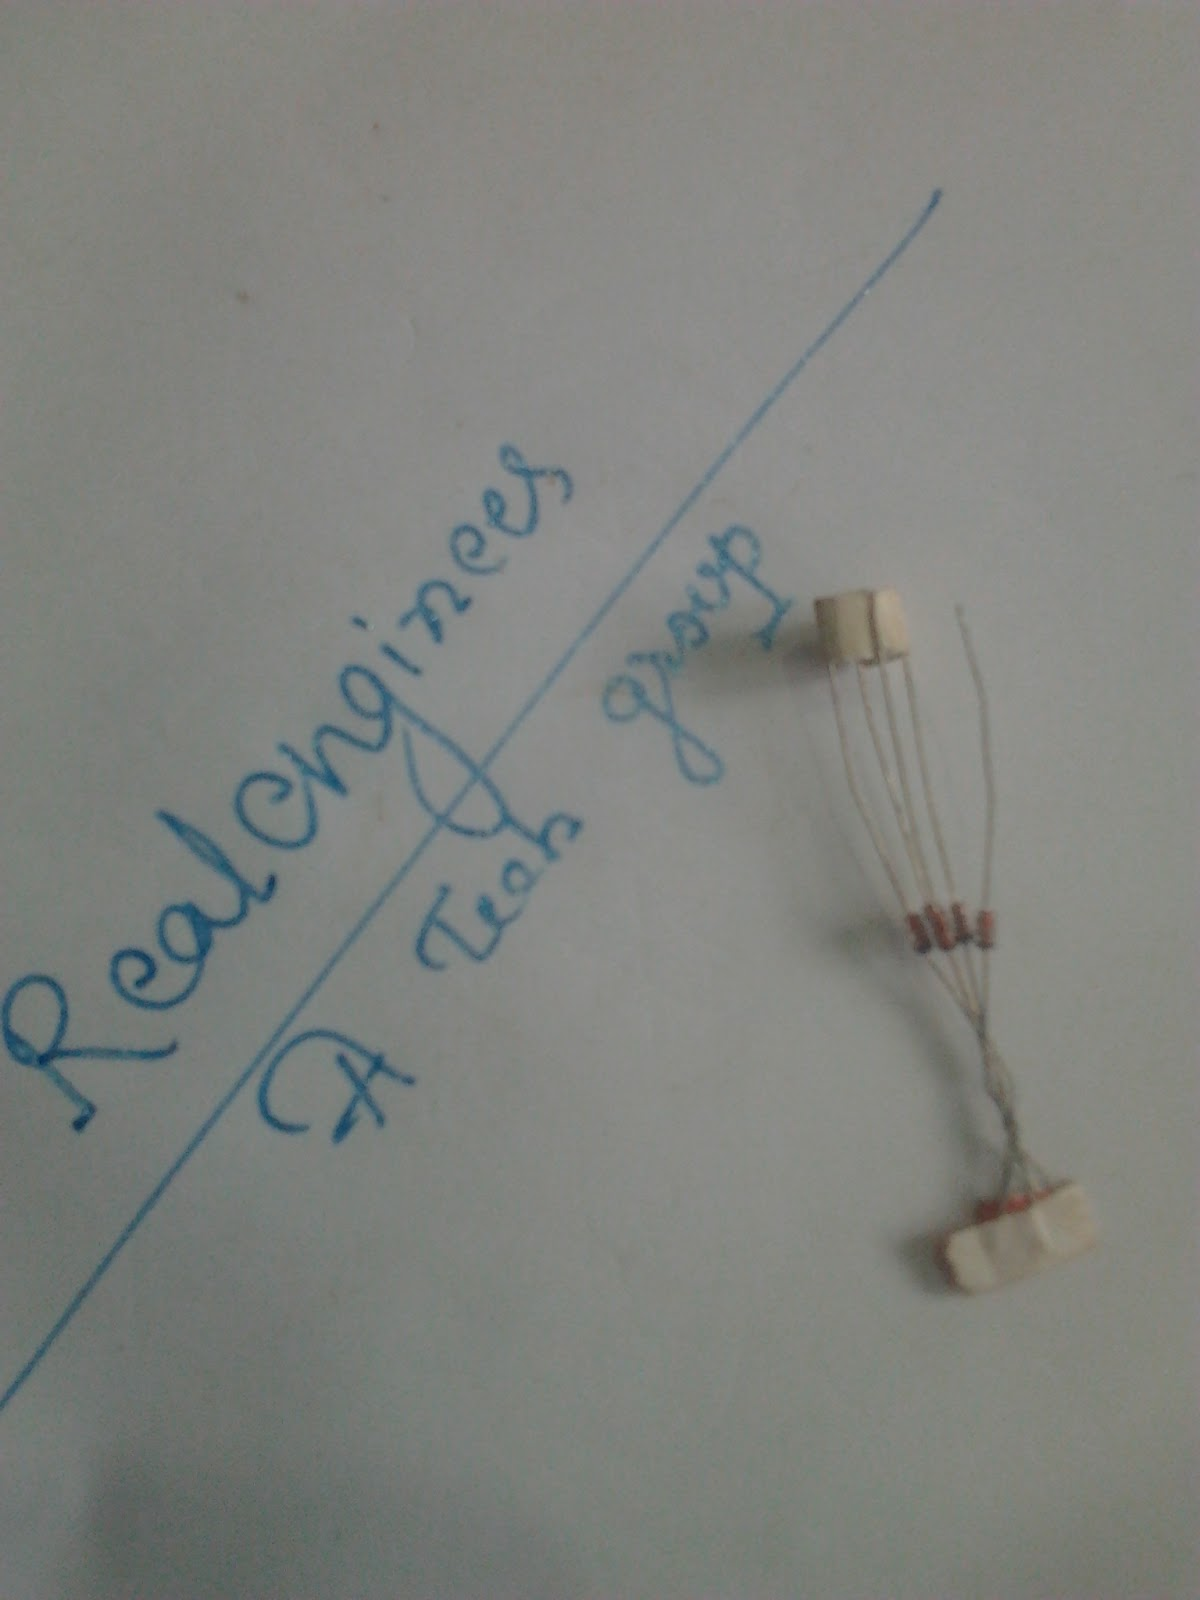 Real Engineers A Tech Group August 2013 Fire Alarm Using Thermistor 038 Ne555 Pcb Transformer 220 12v Diods In5408